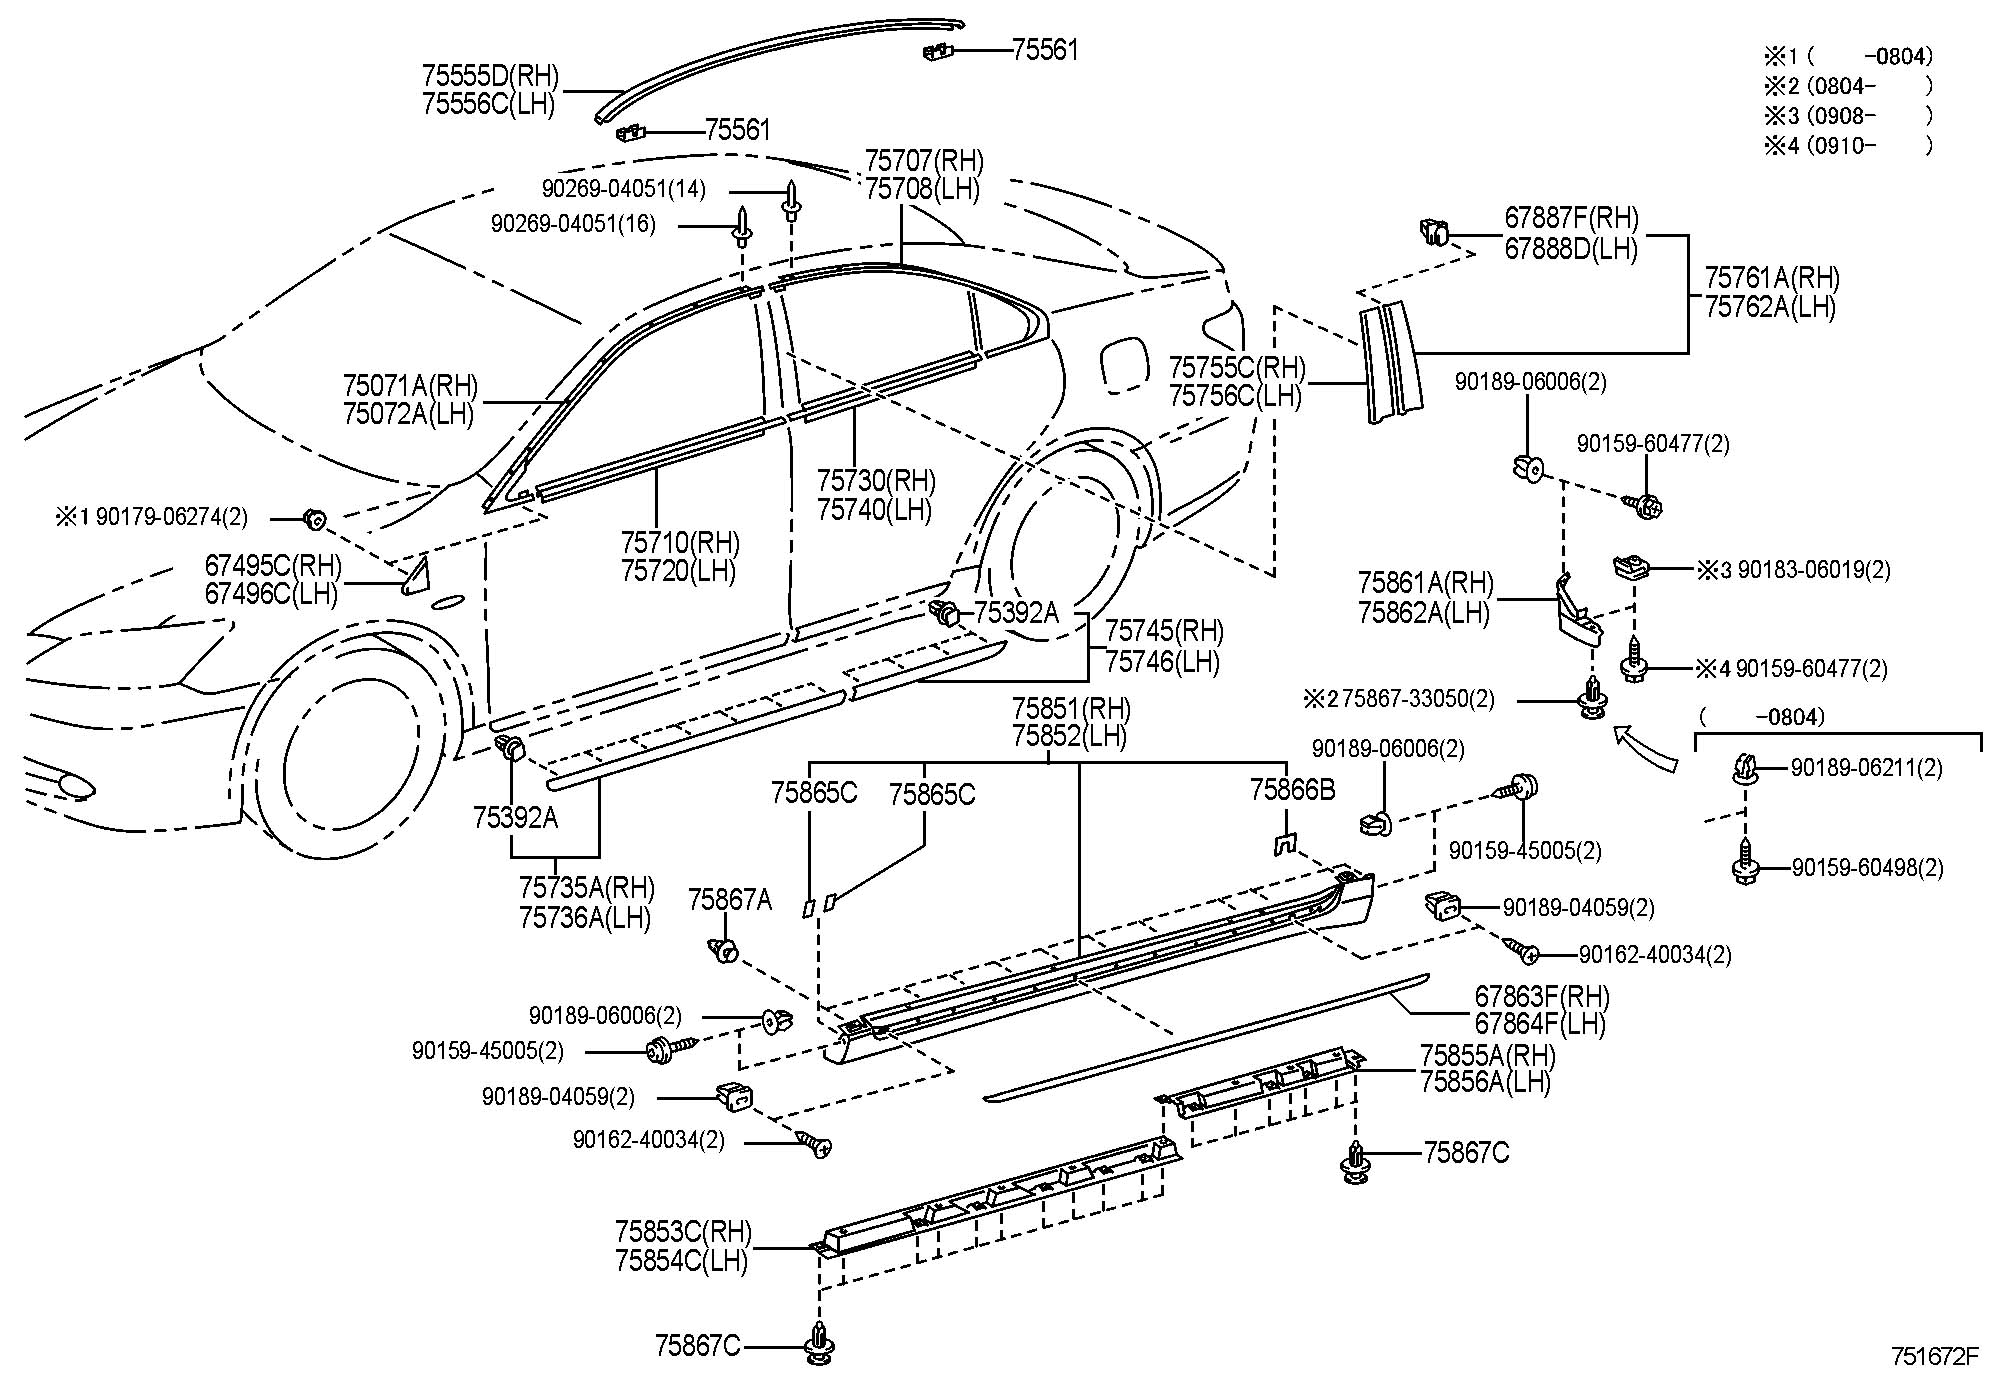 Lexus Parts Diagram Great Design Of Wiring 330 Cd Player 2004 Es330 Vacuum Auto Rx 350 Rx400h